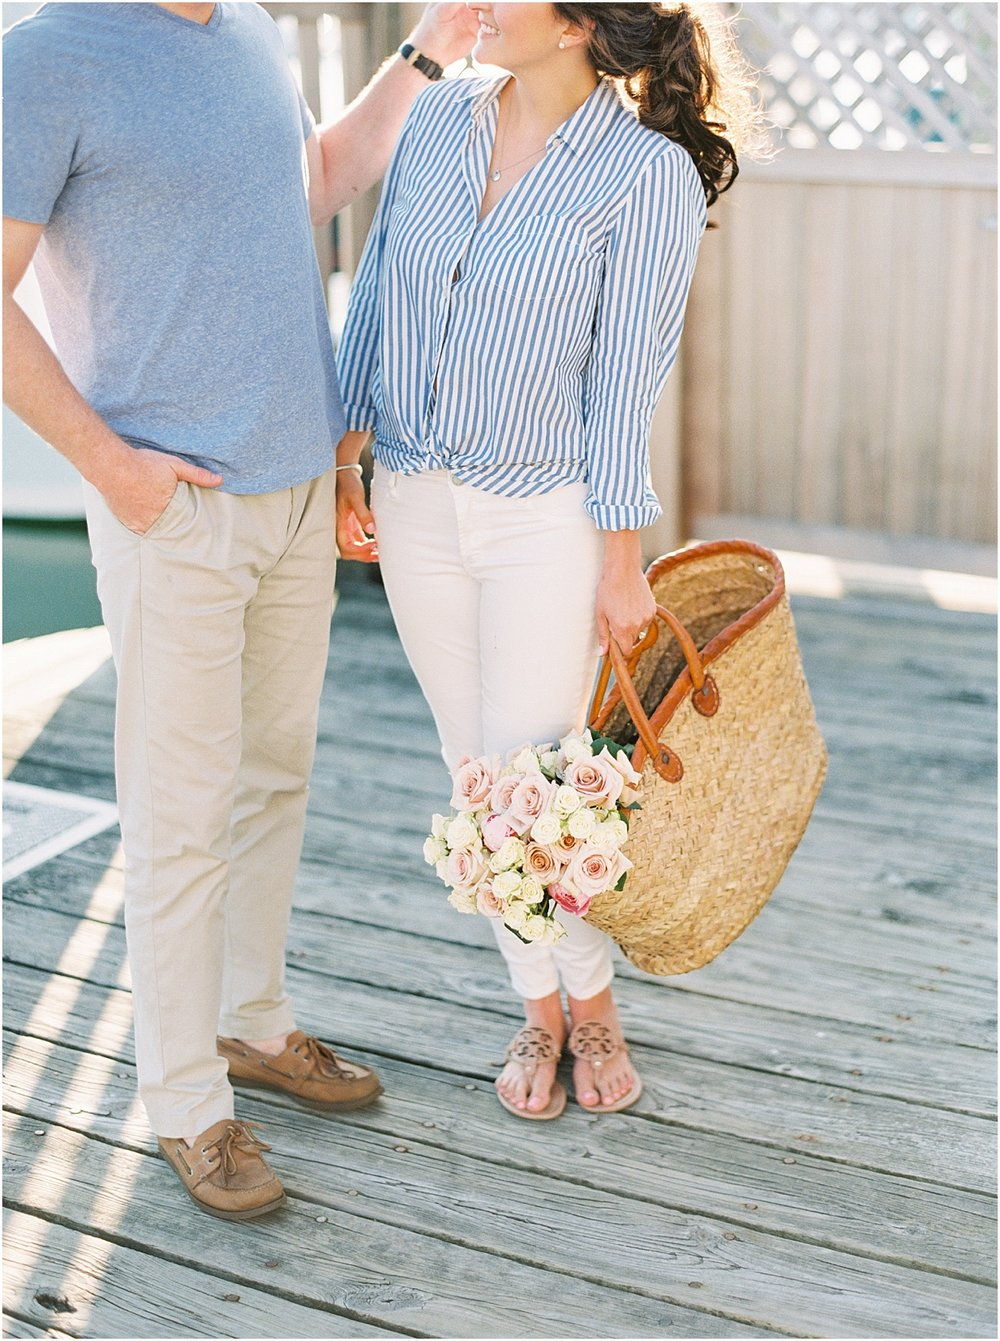 love_and_light_photographs_meredith_chris_engagement_martha_vineyard_marthas_nancys_cape_cod_boston_wedding_photographer_meredith_jane_photography_photo_0430.jpg